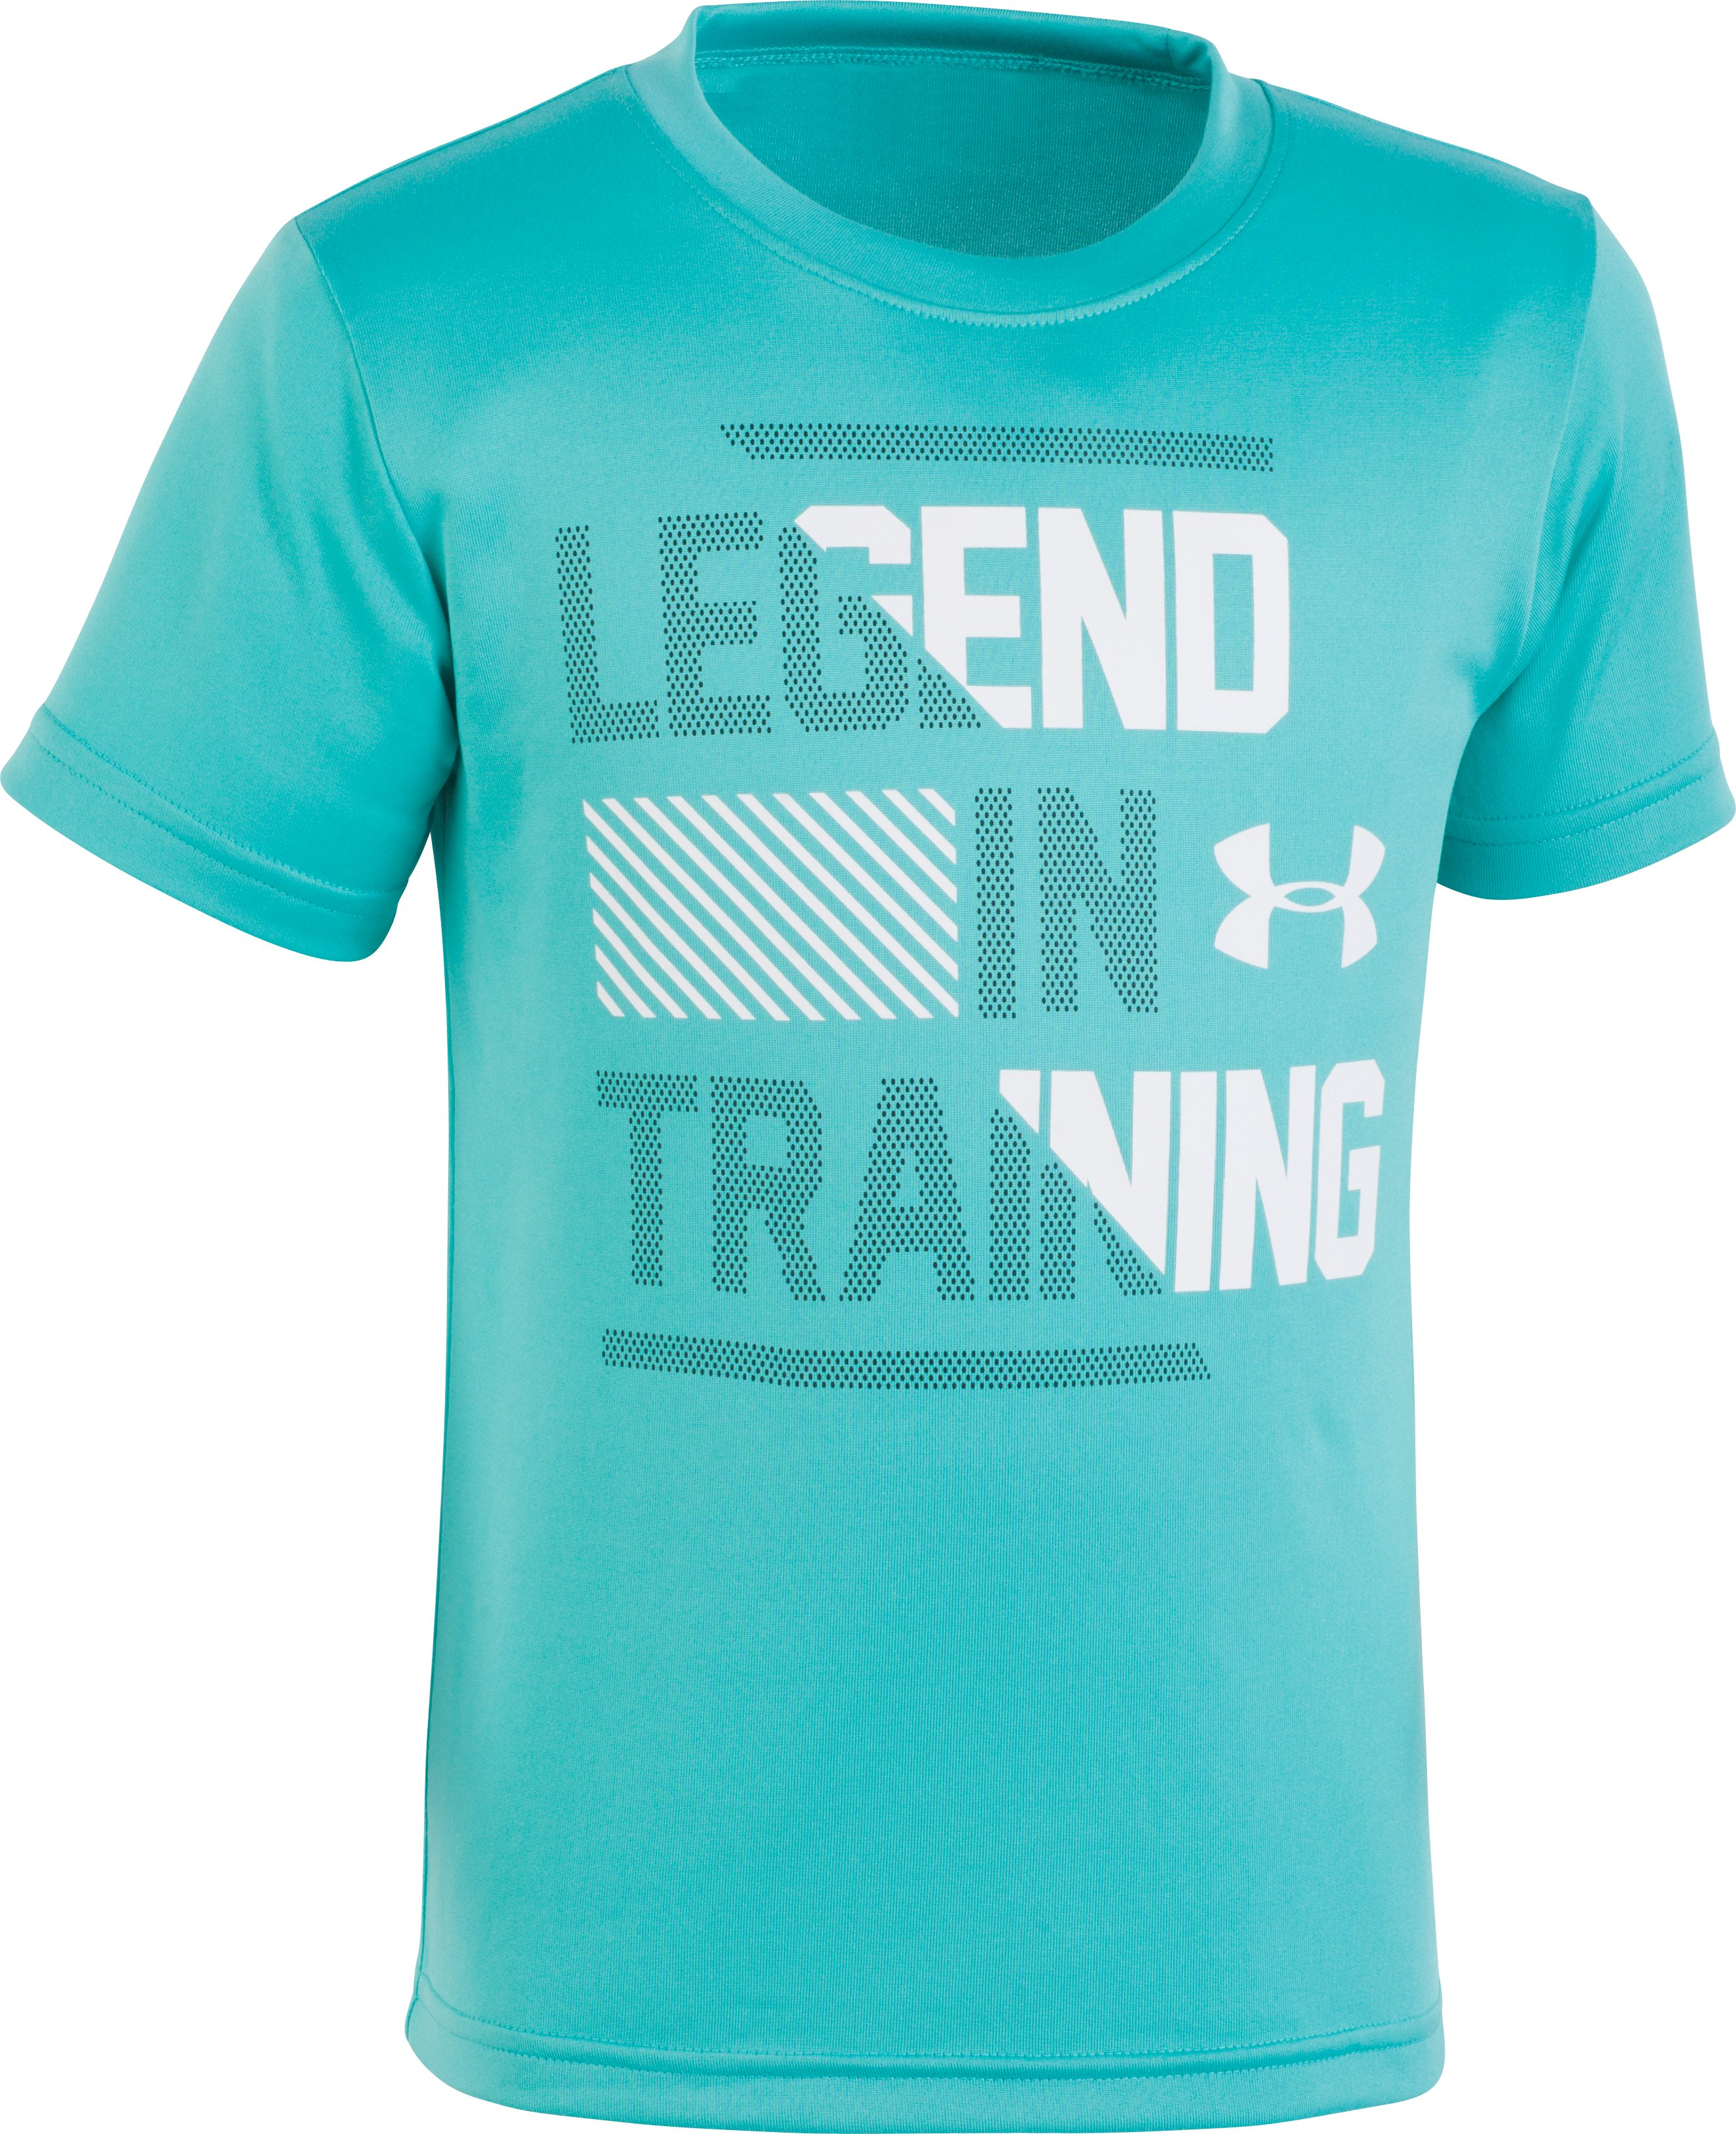 Boys' Pre-School UA Legend In Training Short Sleeve, Teal Punch, zoomed